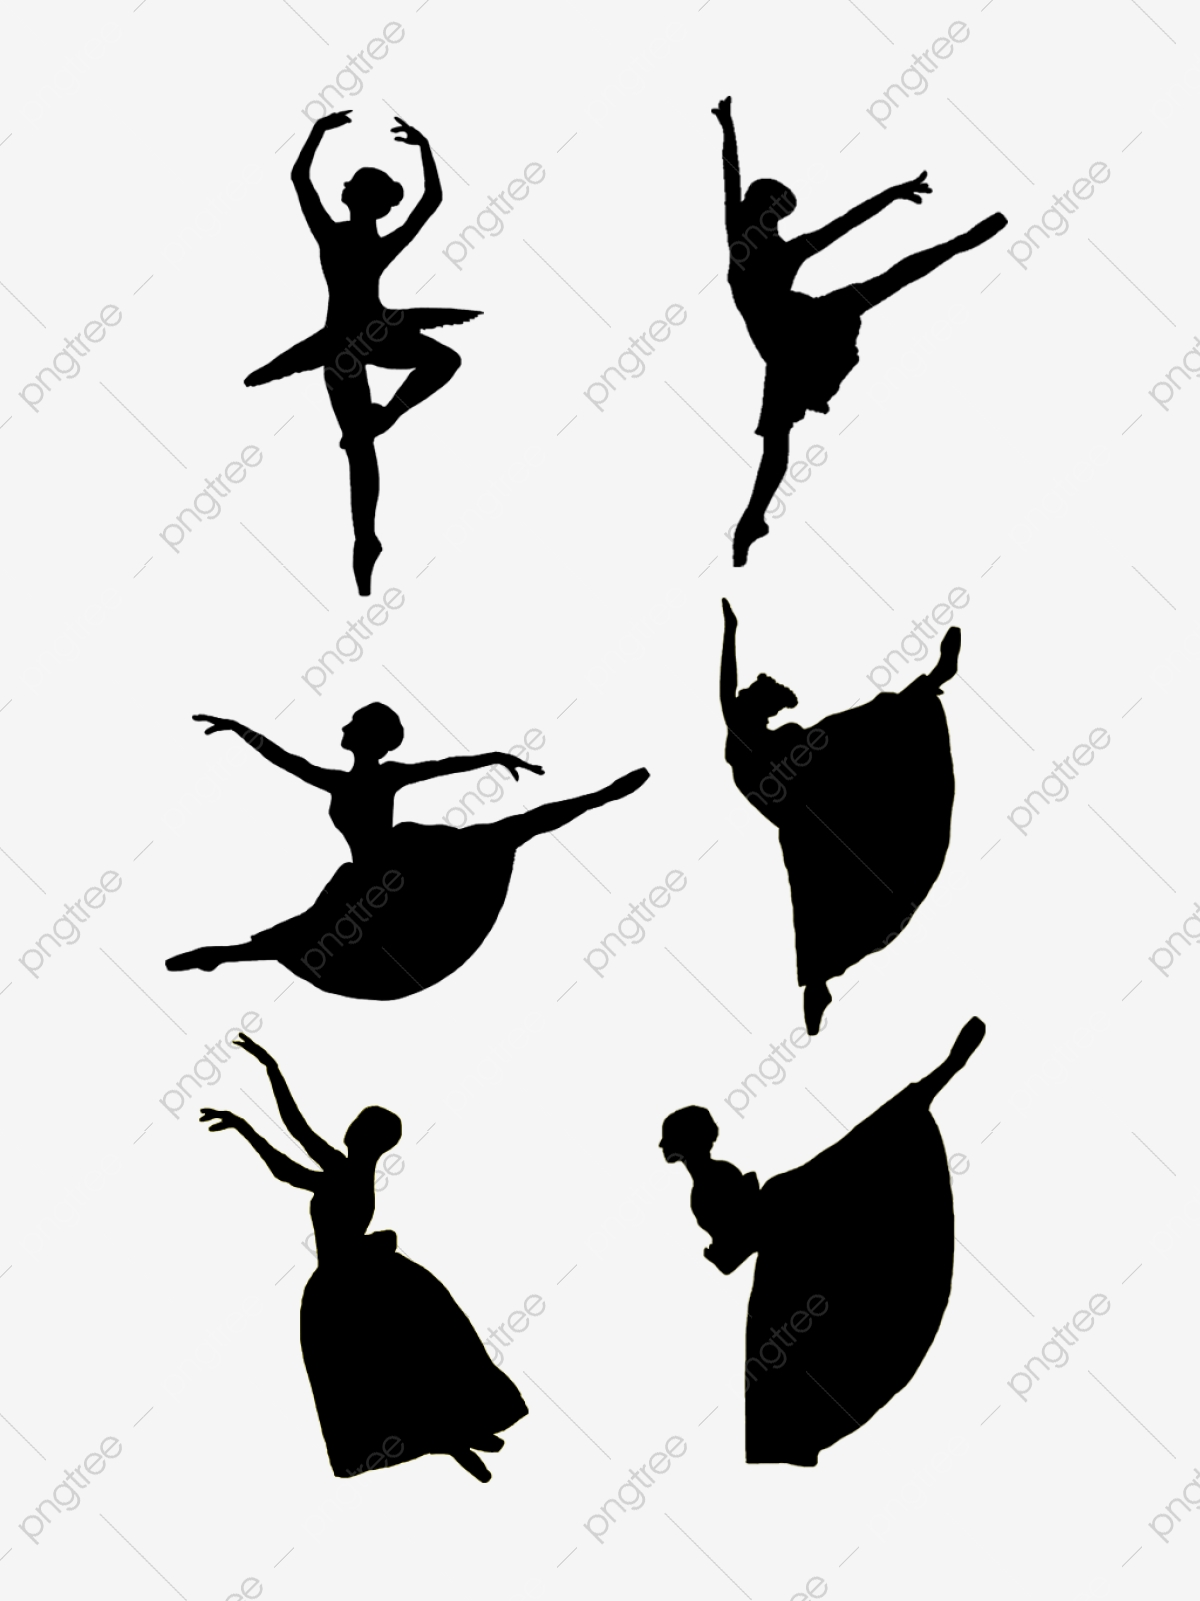 Hand Painted Latin Dancers Silhouette Sketch Dancer Silhouette Dancers Png Transparent Clipart Image And Psd File For Free Download